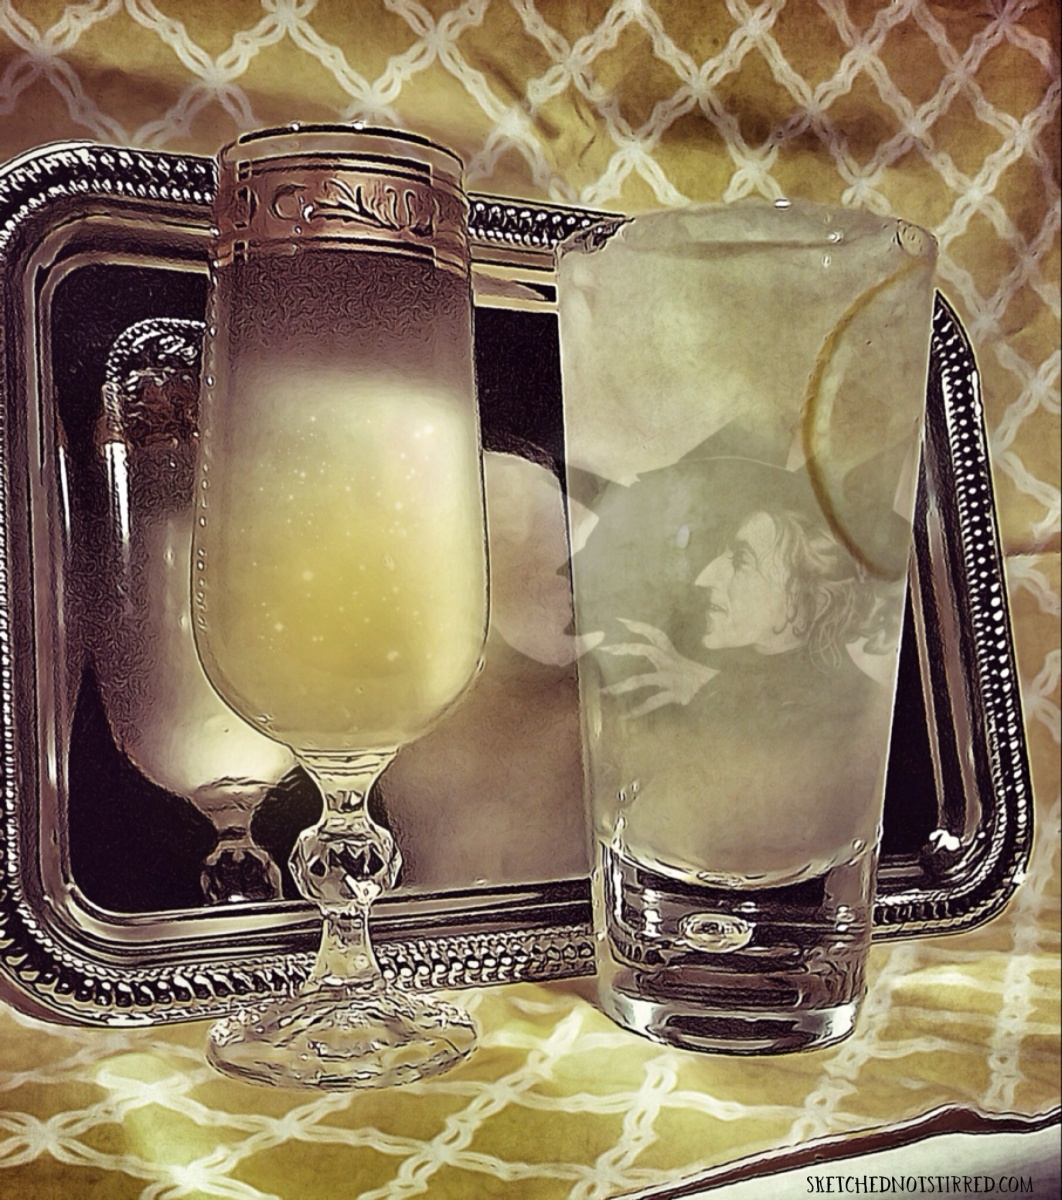 Conjure spirits with a French 75.